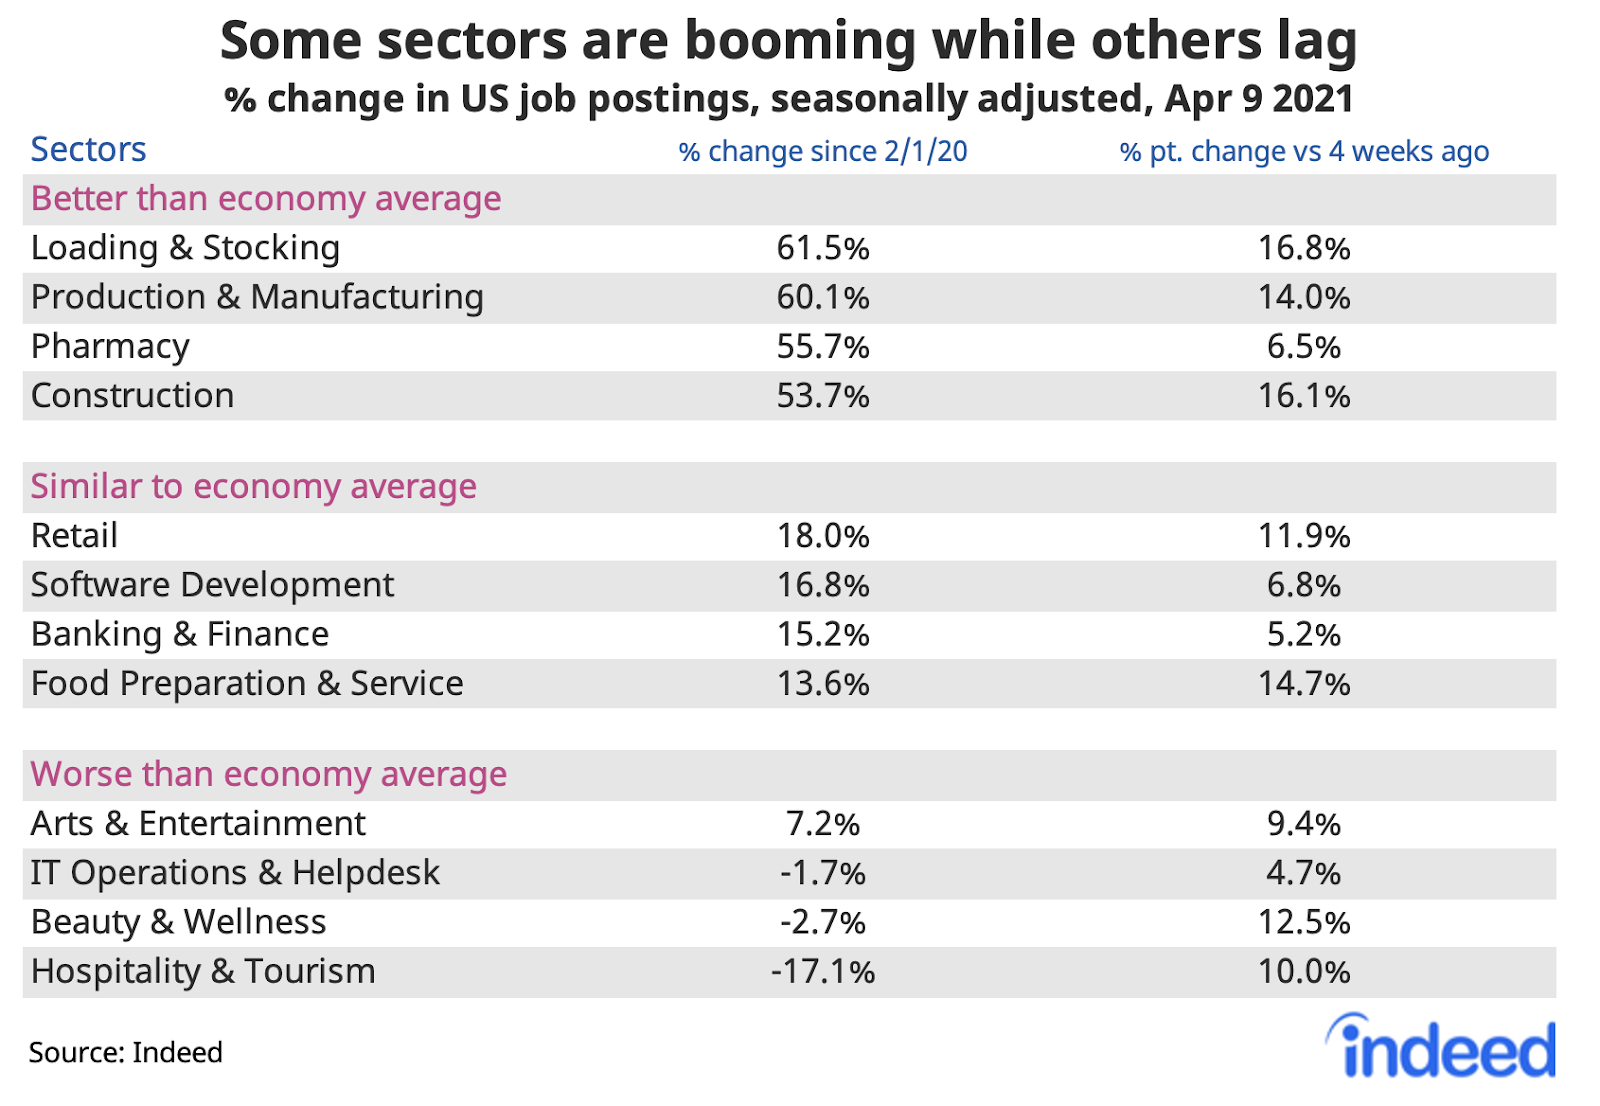 Table showing some job sectors are booming while others lag